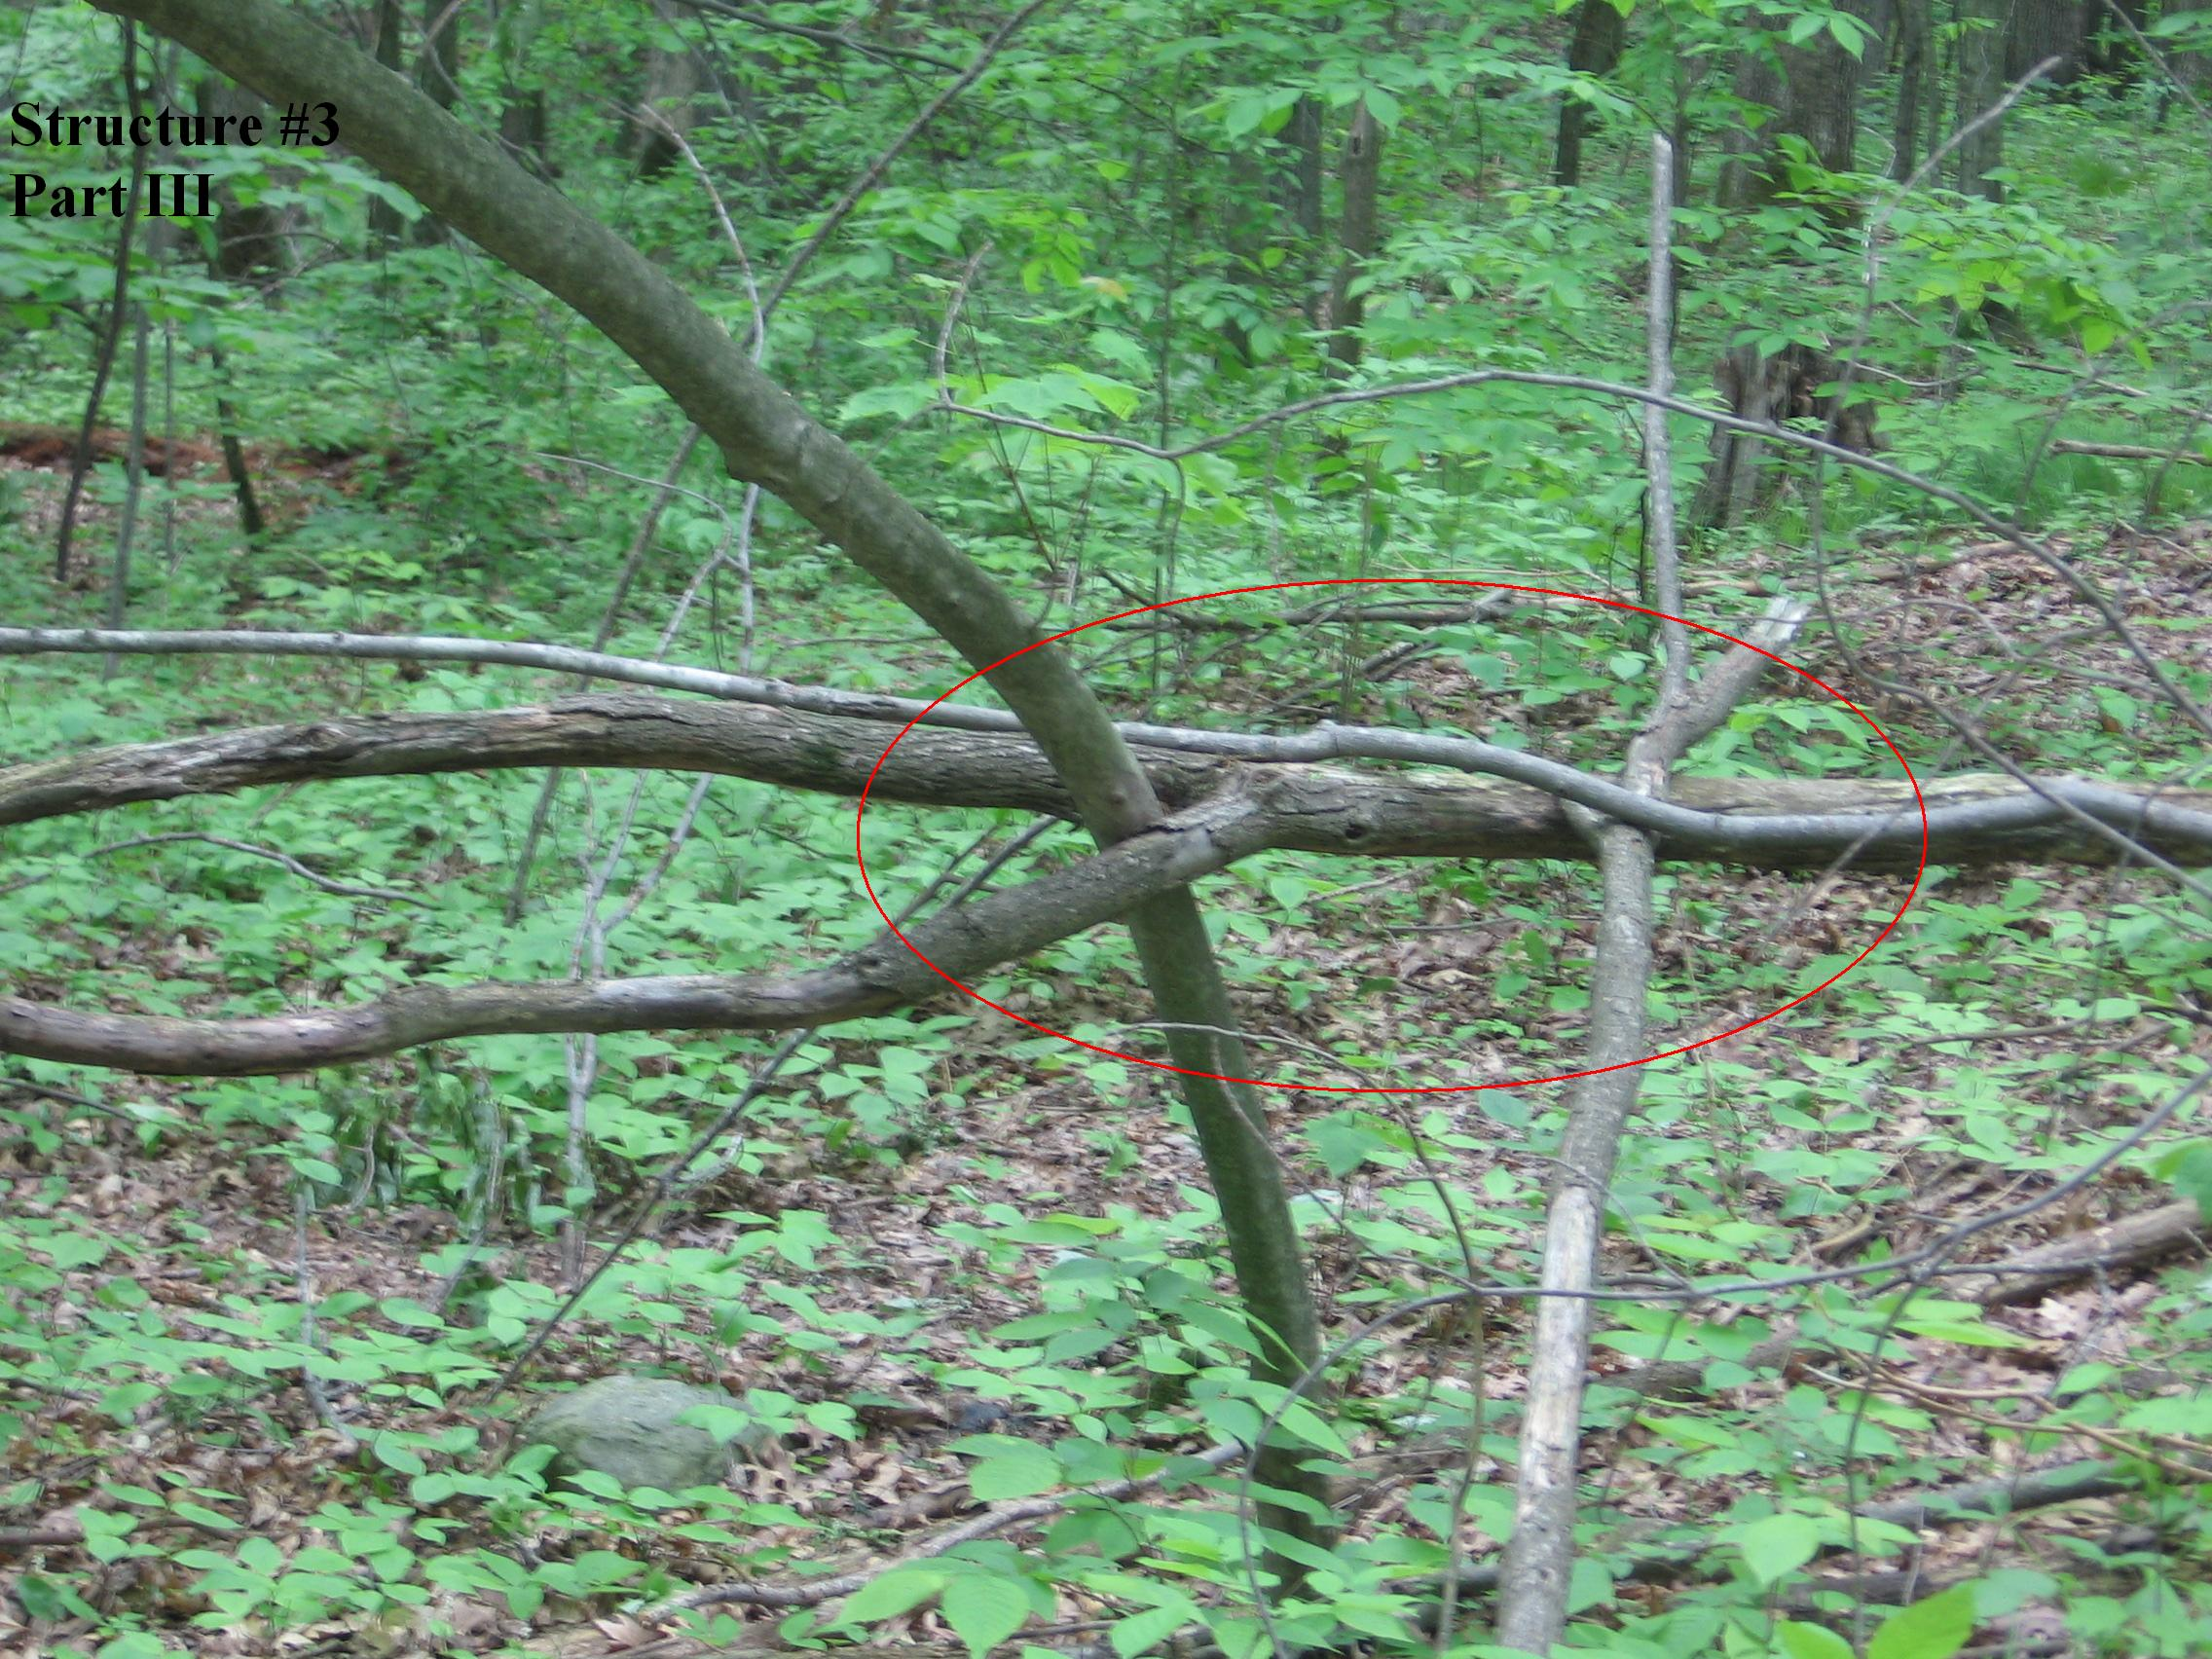 Structure #3, Tree woven through other trees part III